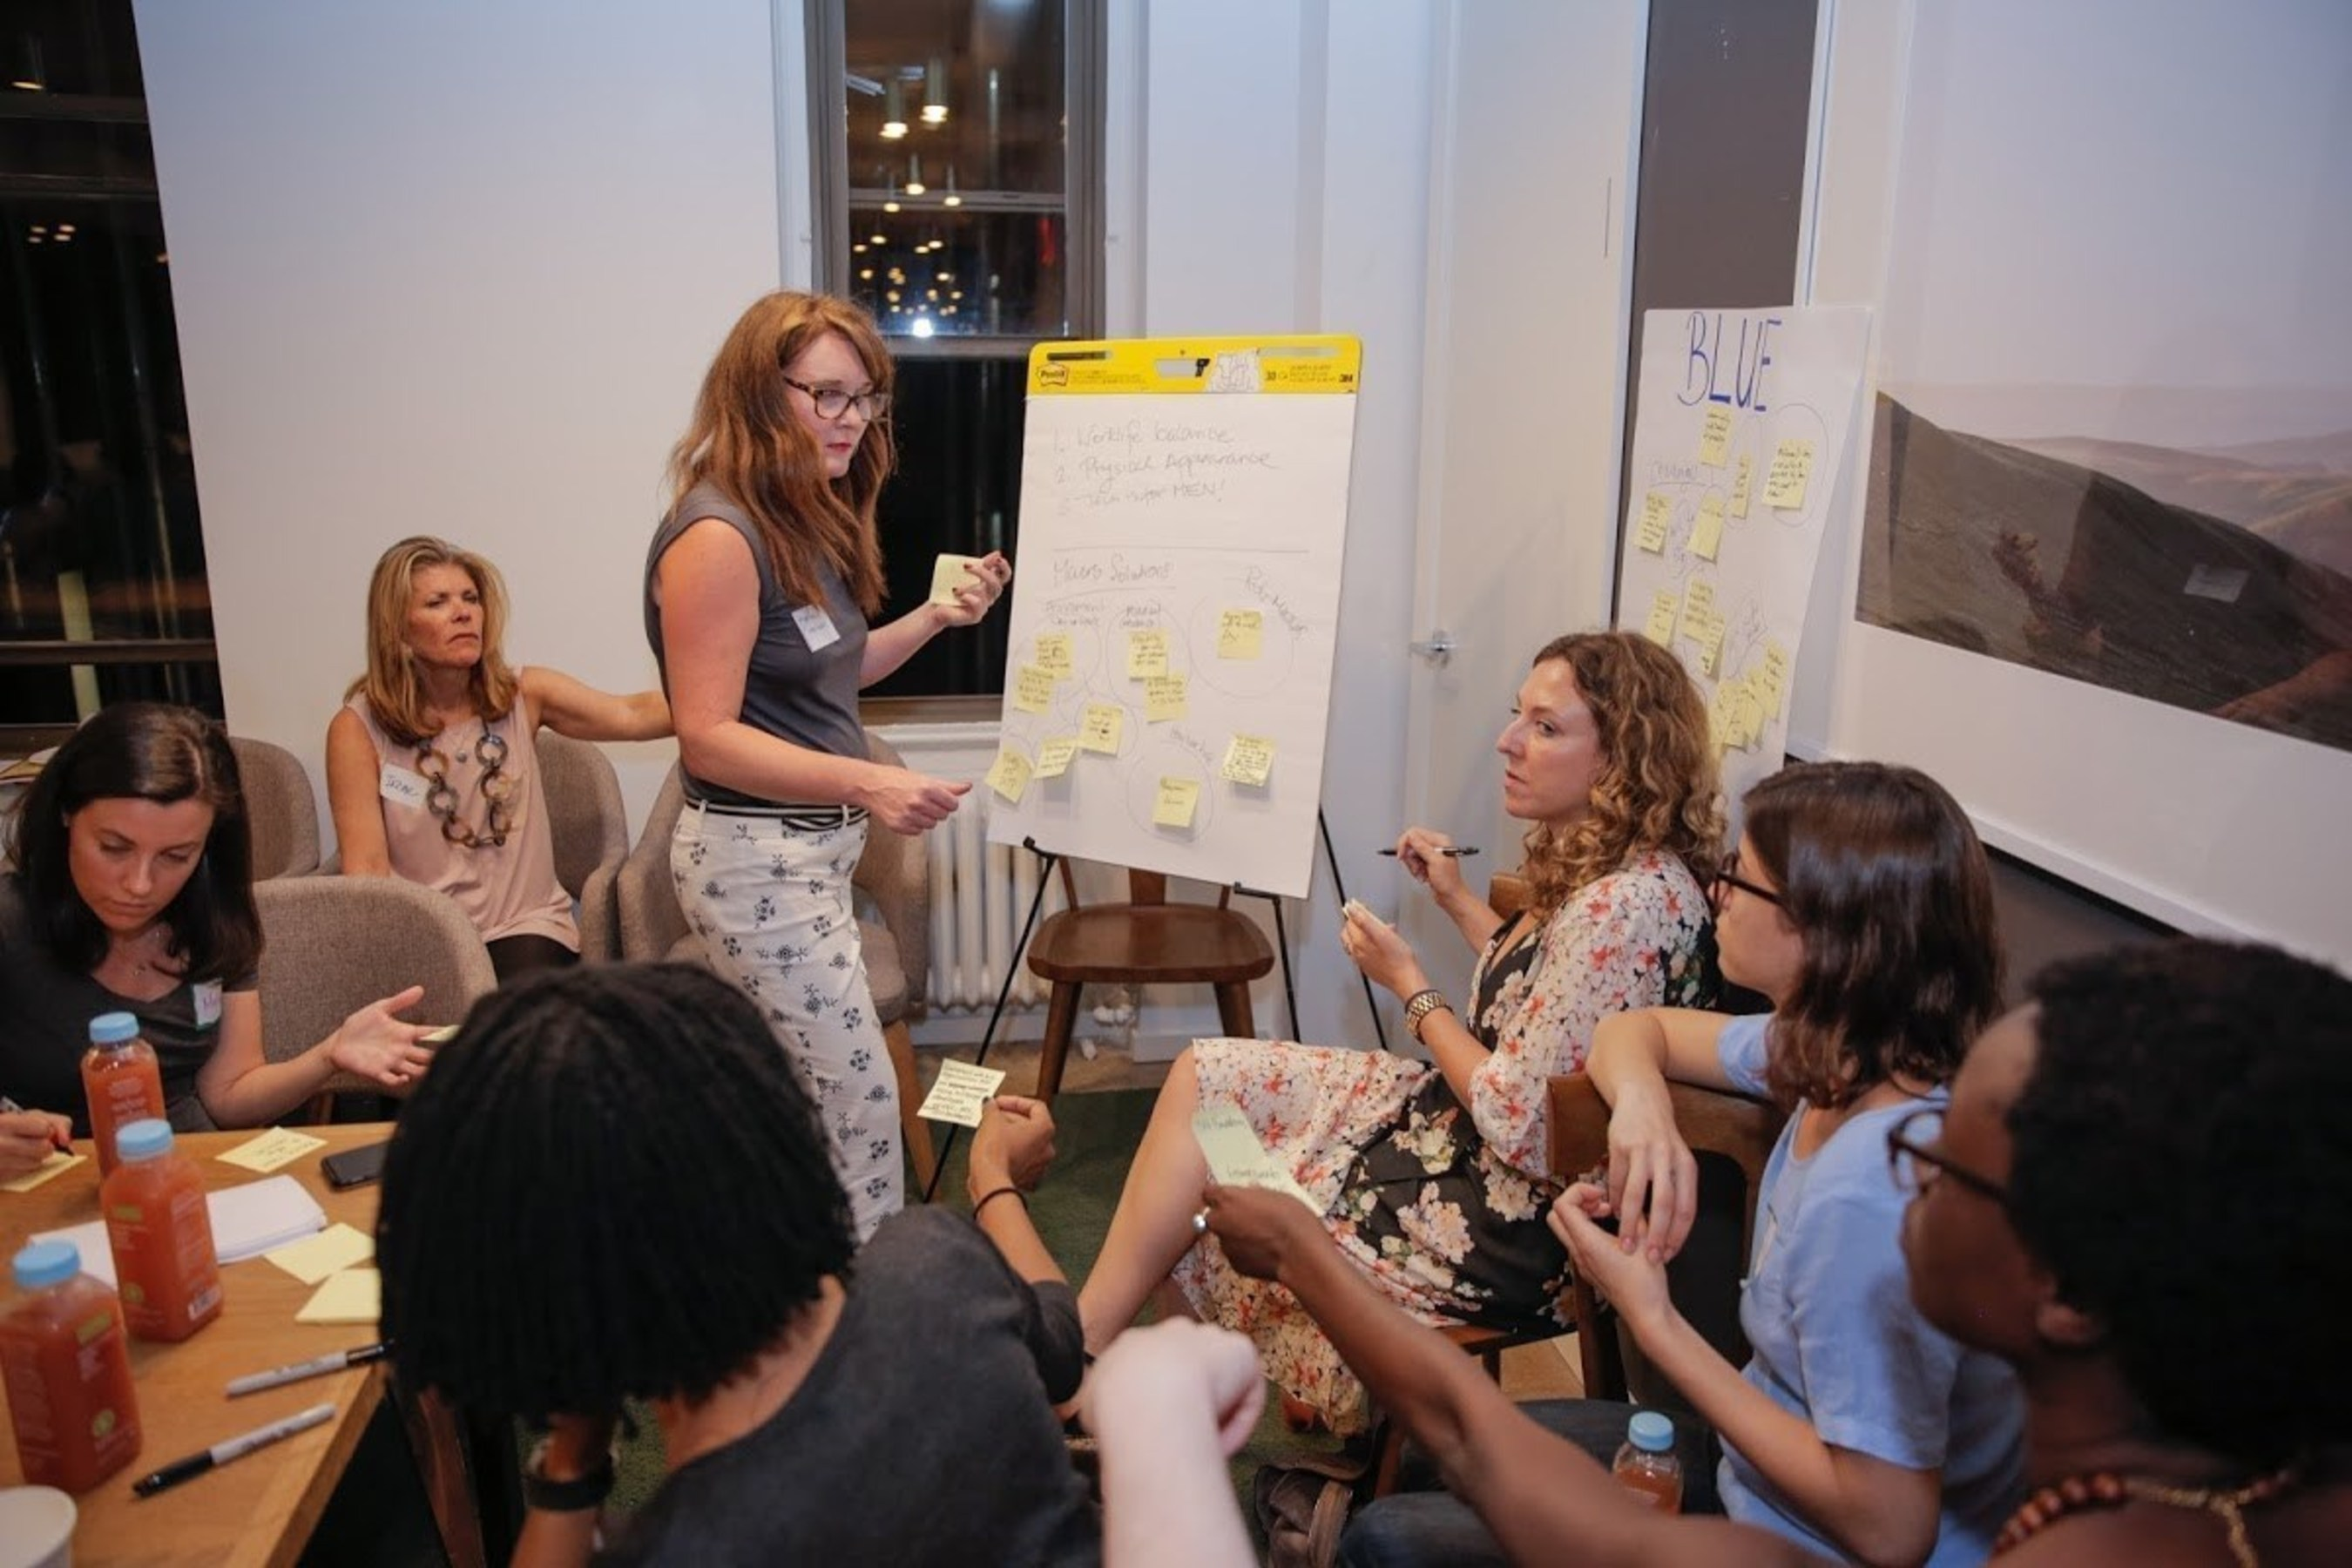 """A breakout """"huddle"""" at Hackerati's """"Leaping Up & Over"""" diversity in tech event last week."""